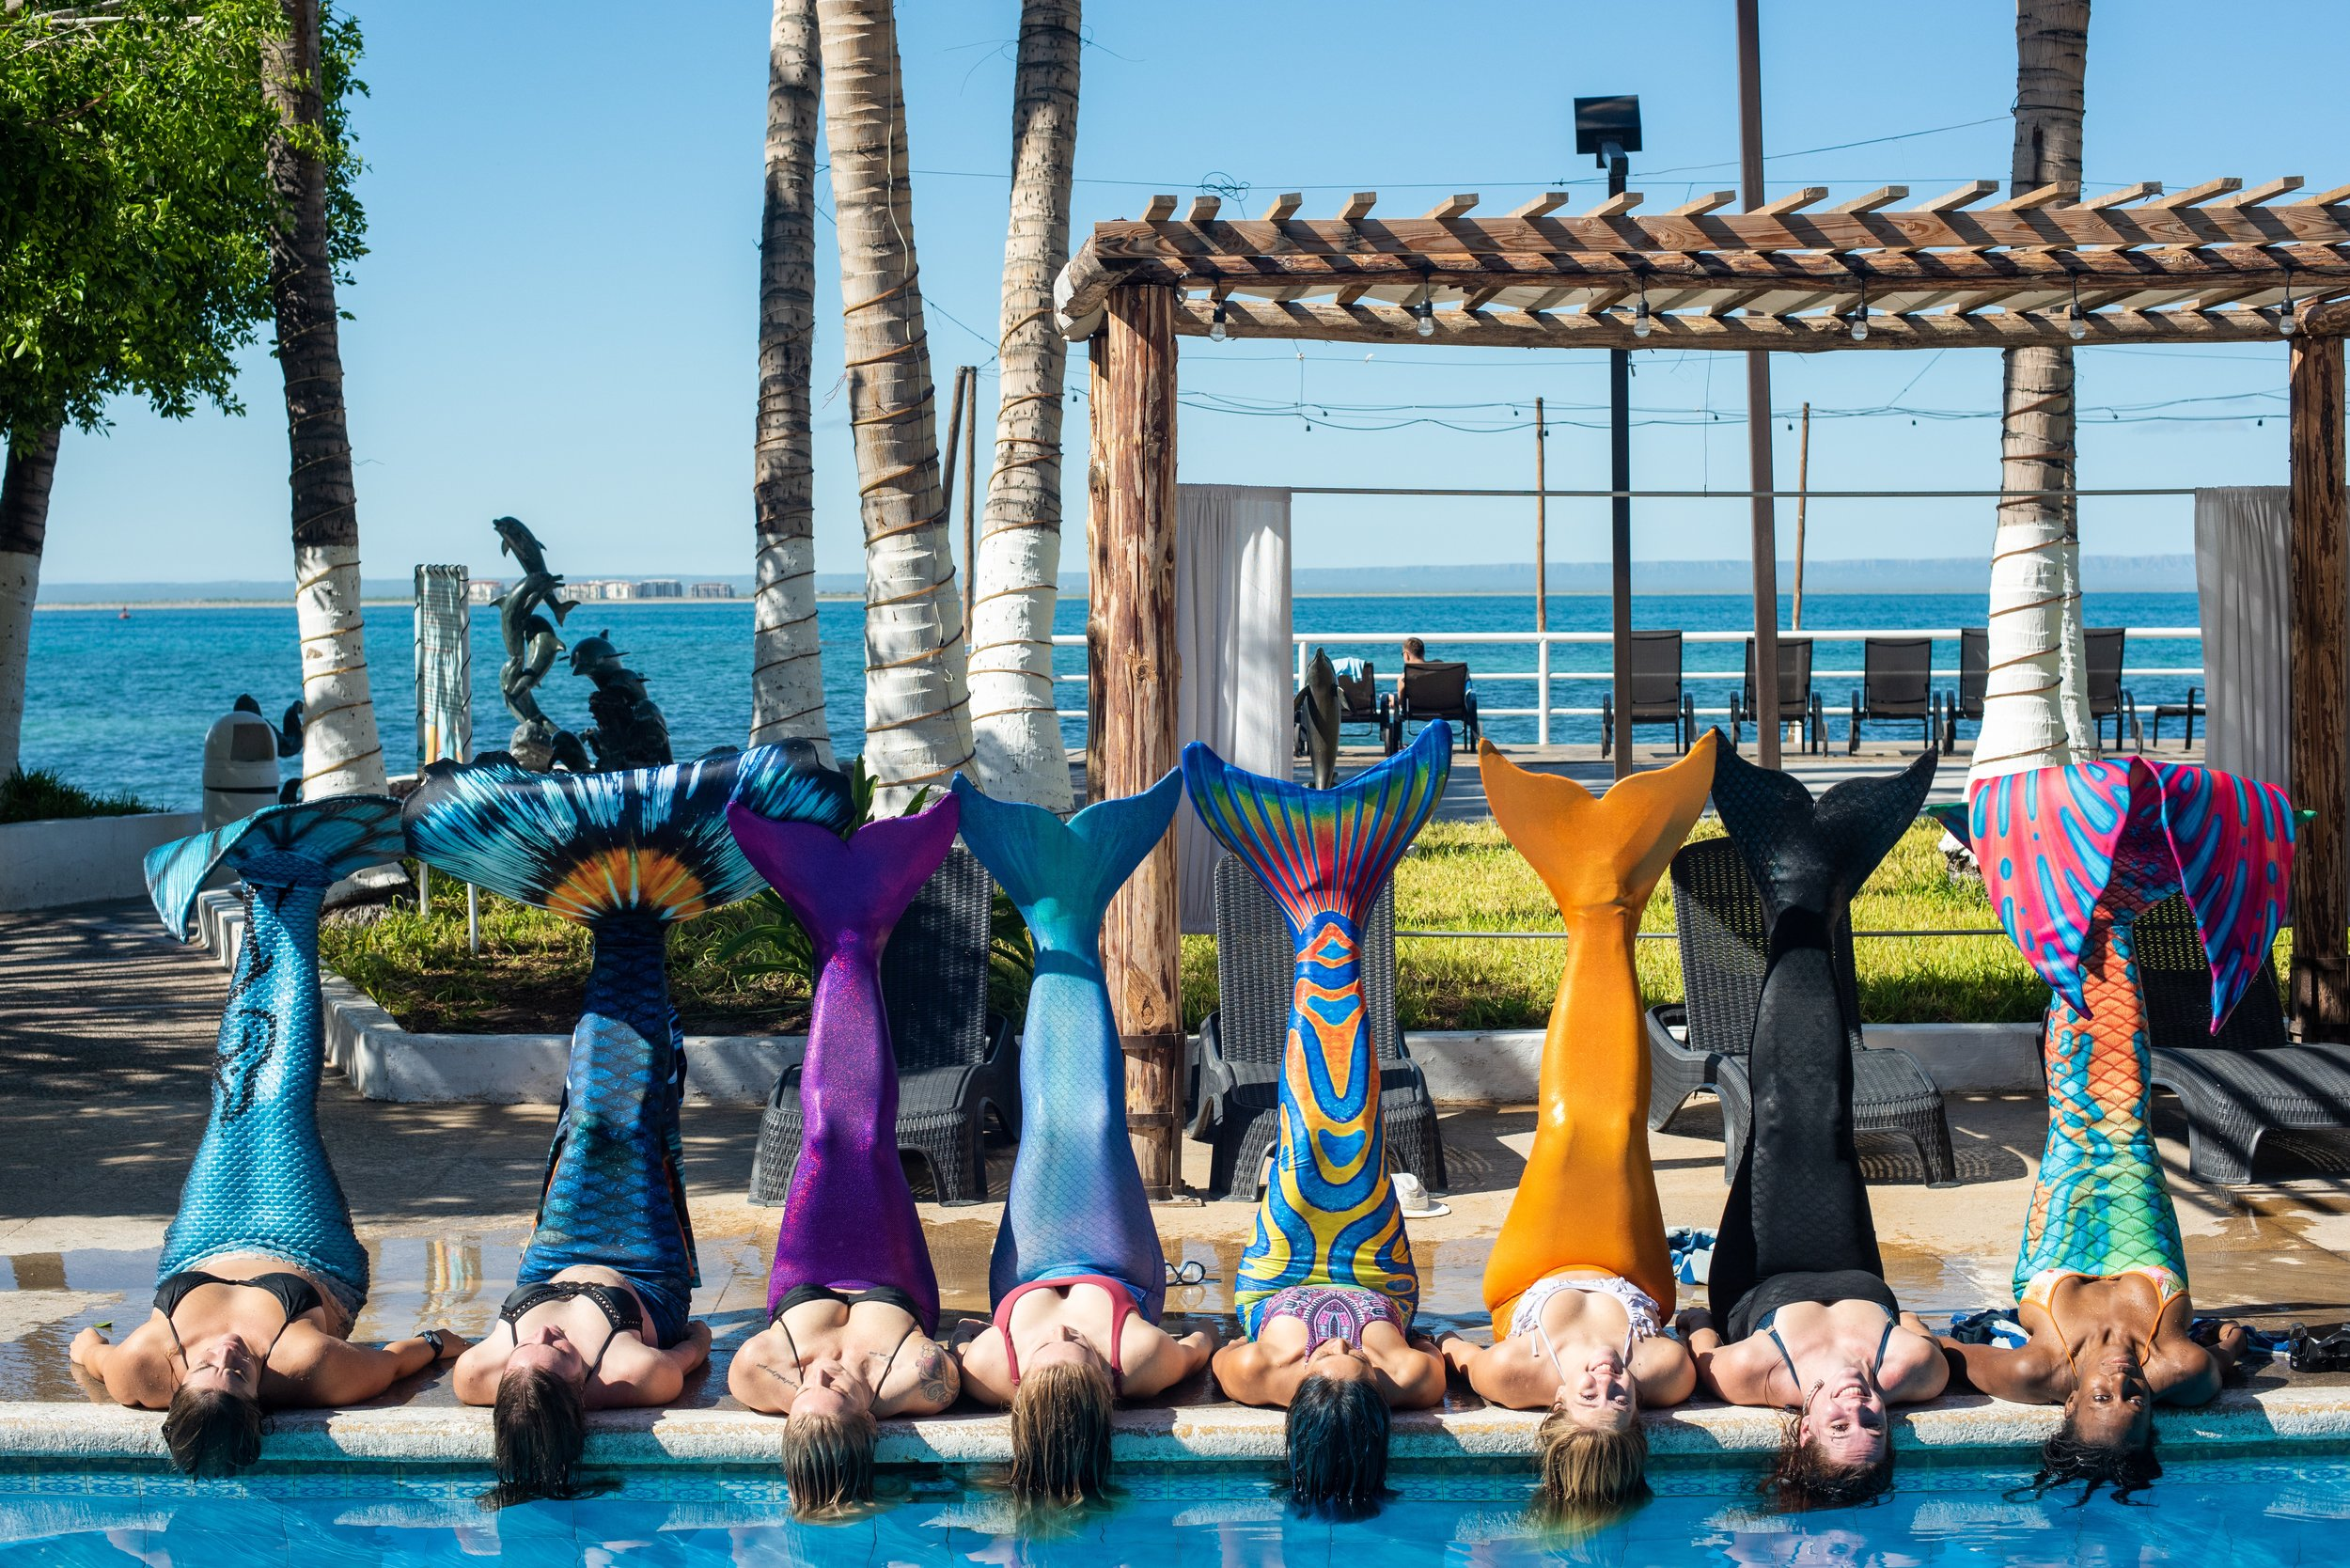 Mermaid Lila (far left) with her students in La Paz, Mexico during a Mermaid Dream Retreat Photo by Cassie Pali ( @Casafras_h2o ).